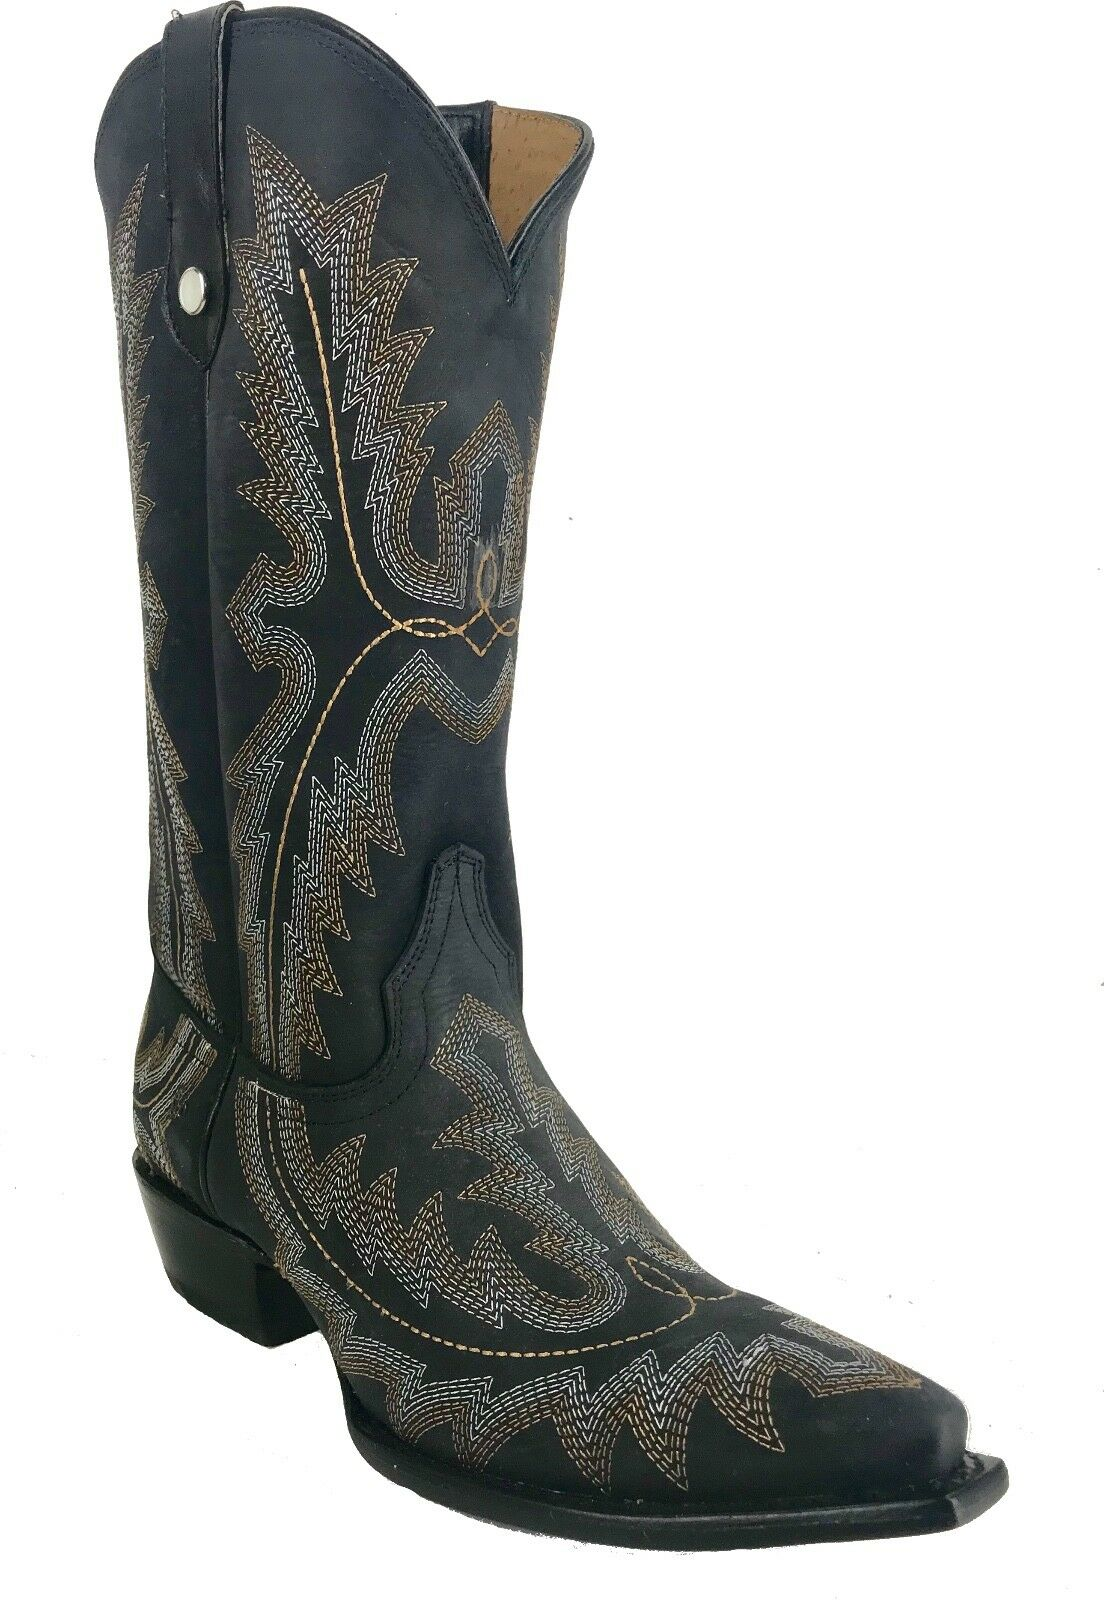 Women's New Leather Cowgirl Western Biker Boots Snip Black Sale